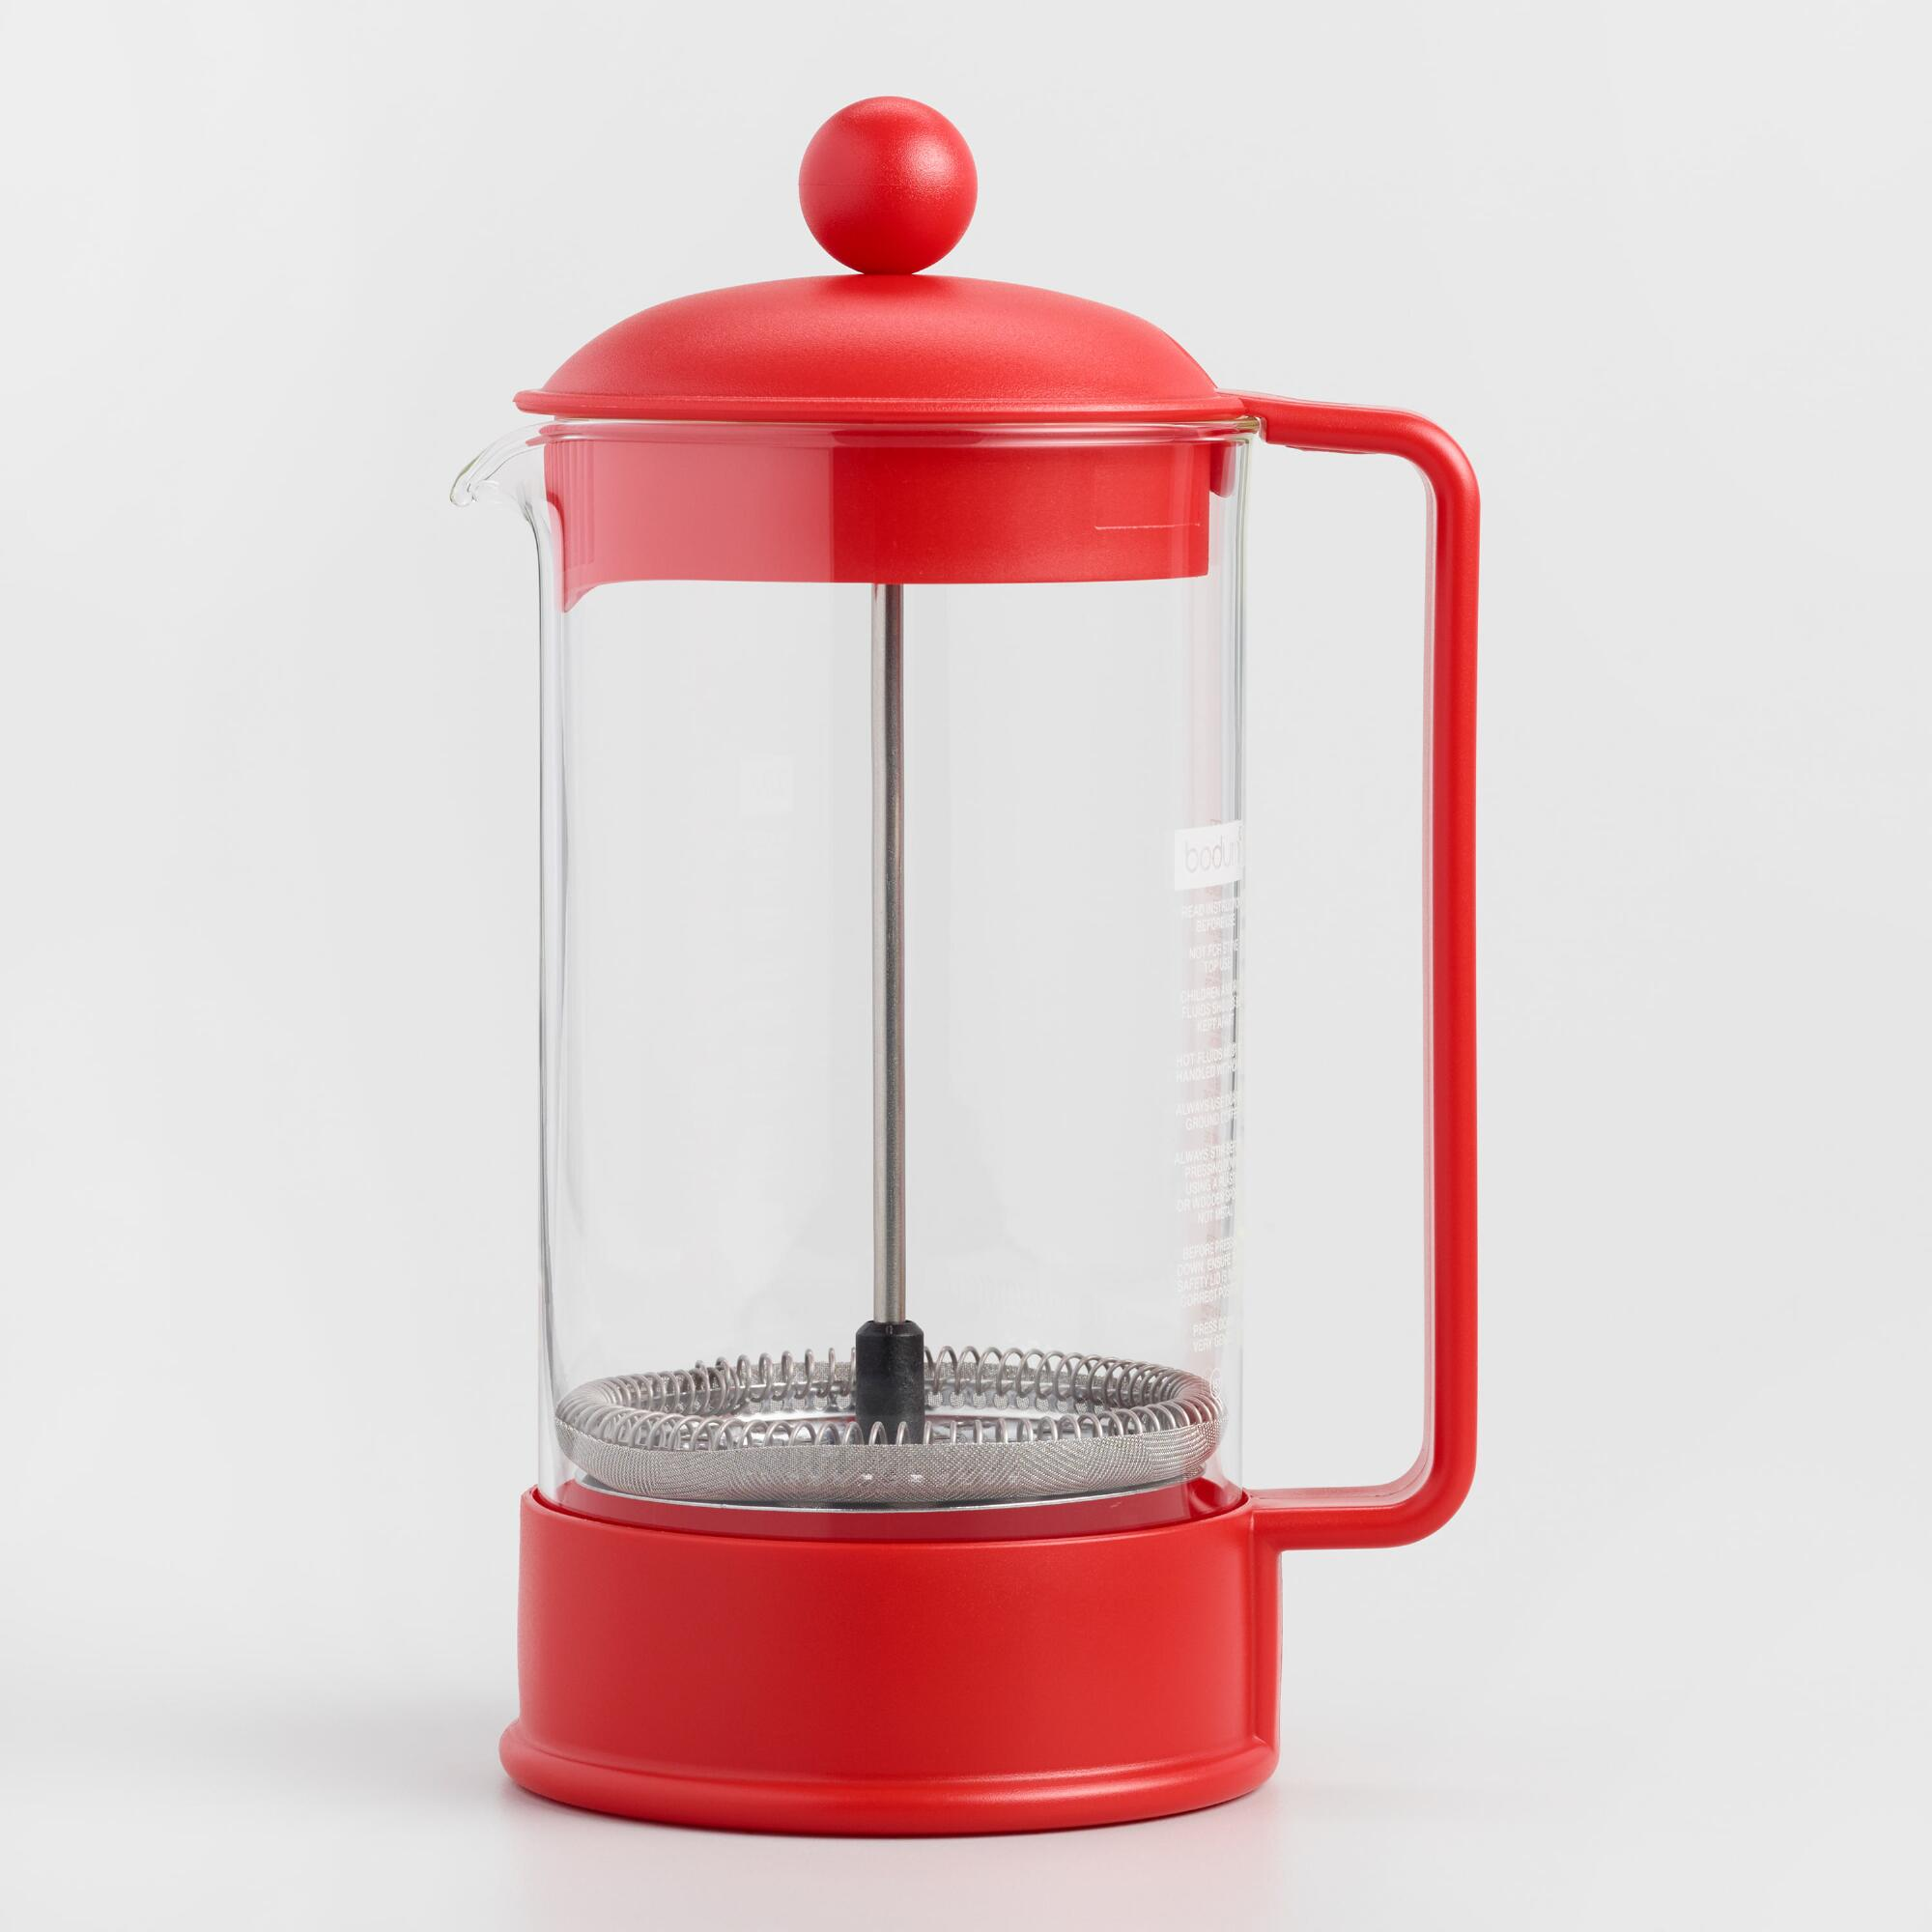 Bed bath beyond french press - Bed Bath Beyond French Press 23